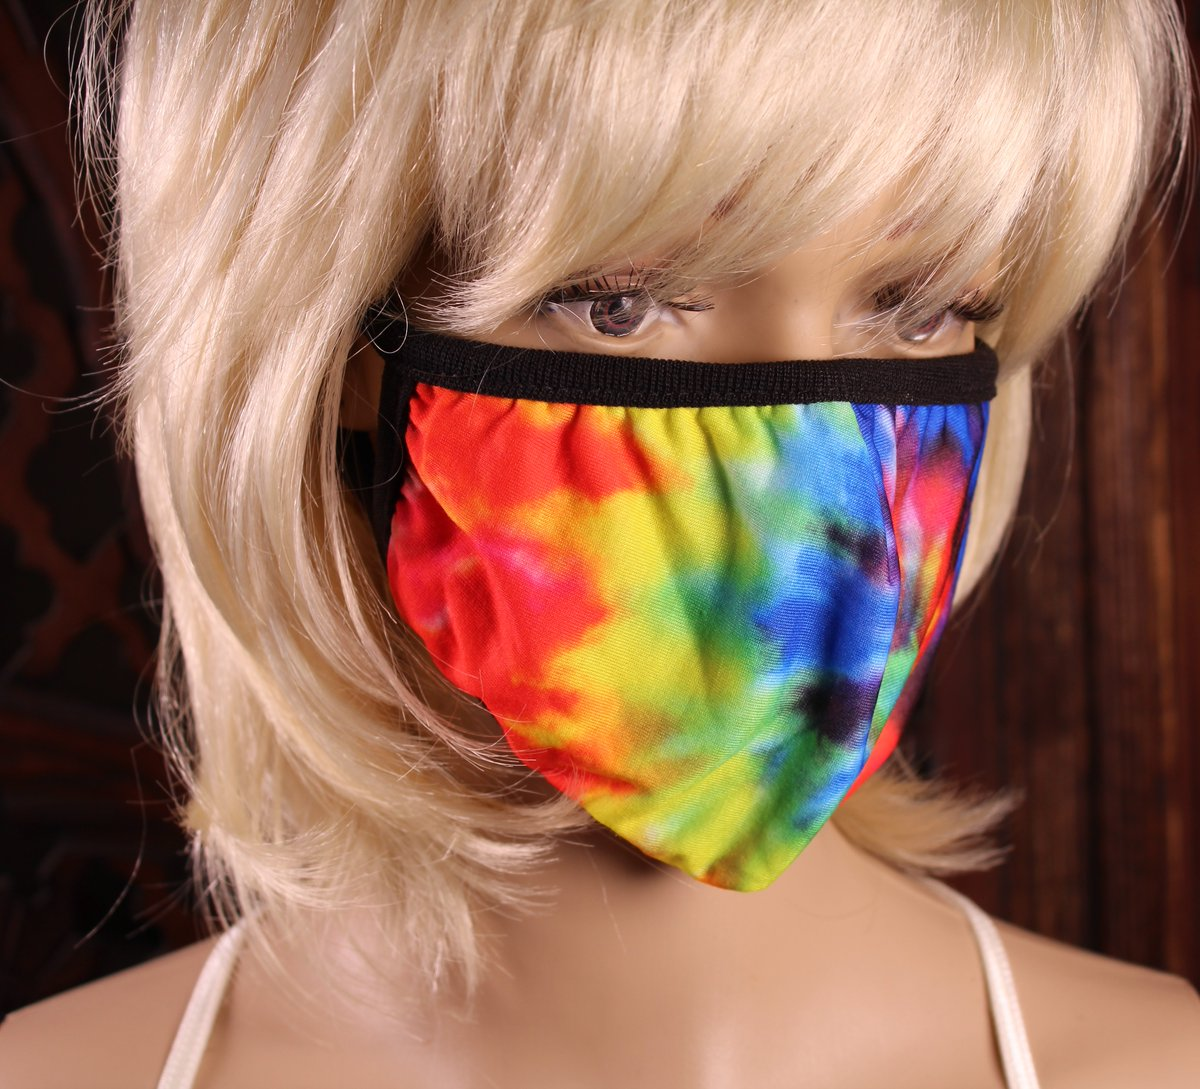 Make Your Facemask Part of Your Fashion Statement with our Selection of Unique Facecovers!#facemask #facemasks   #facecover #fashionstatement #fashionaccessory #tiedye #tiedyefashion #Covid19 #coronavirus  #fashionista #hippievibes #hippie #hippiestyle https://t.co/QLbdZIqeDu https://t.co/wza8GSjTq1